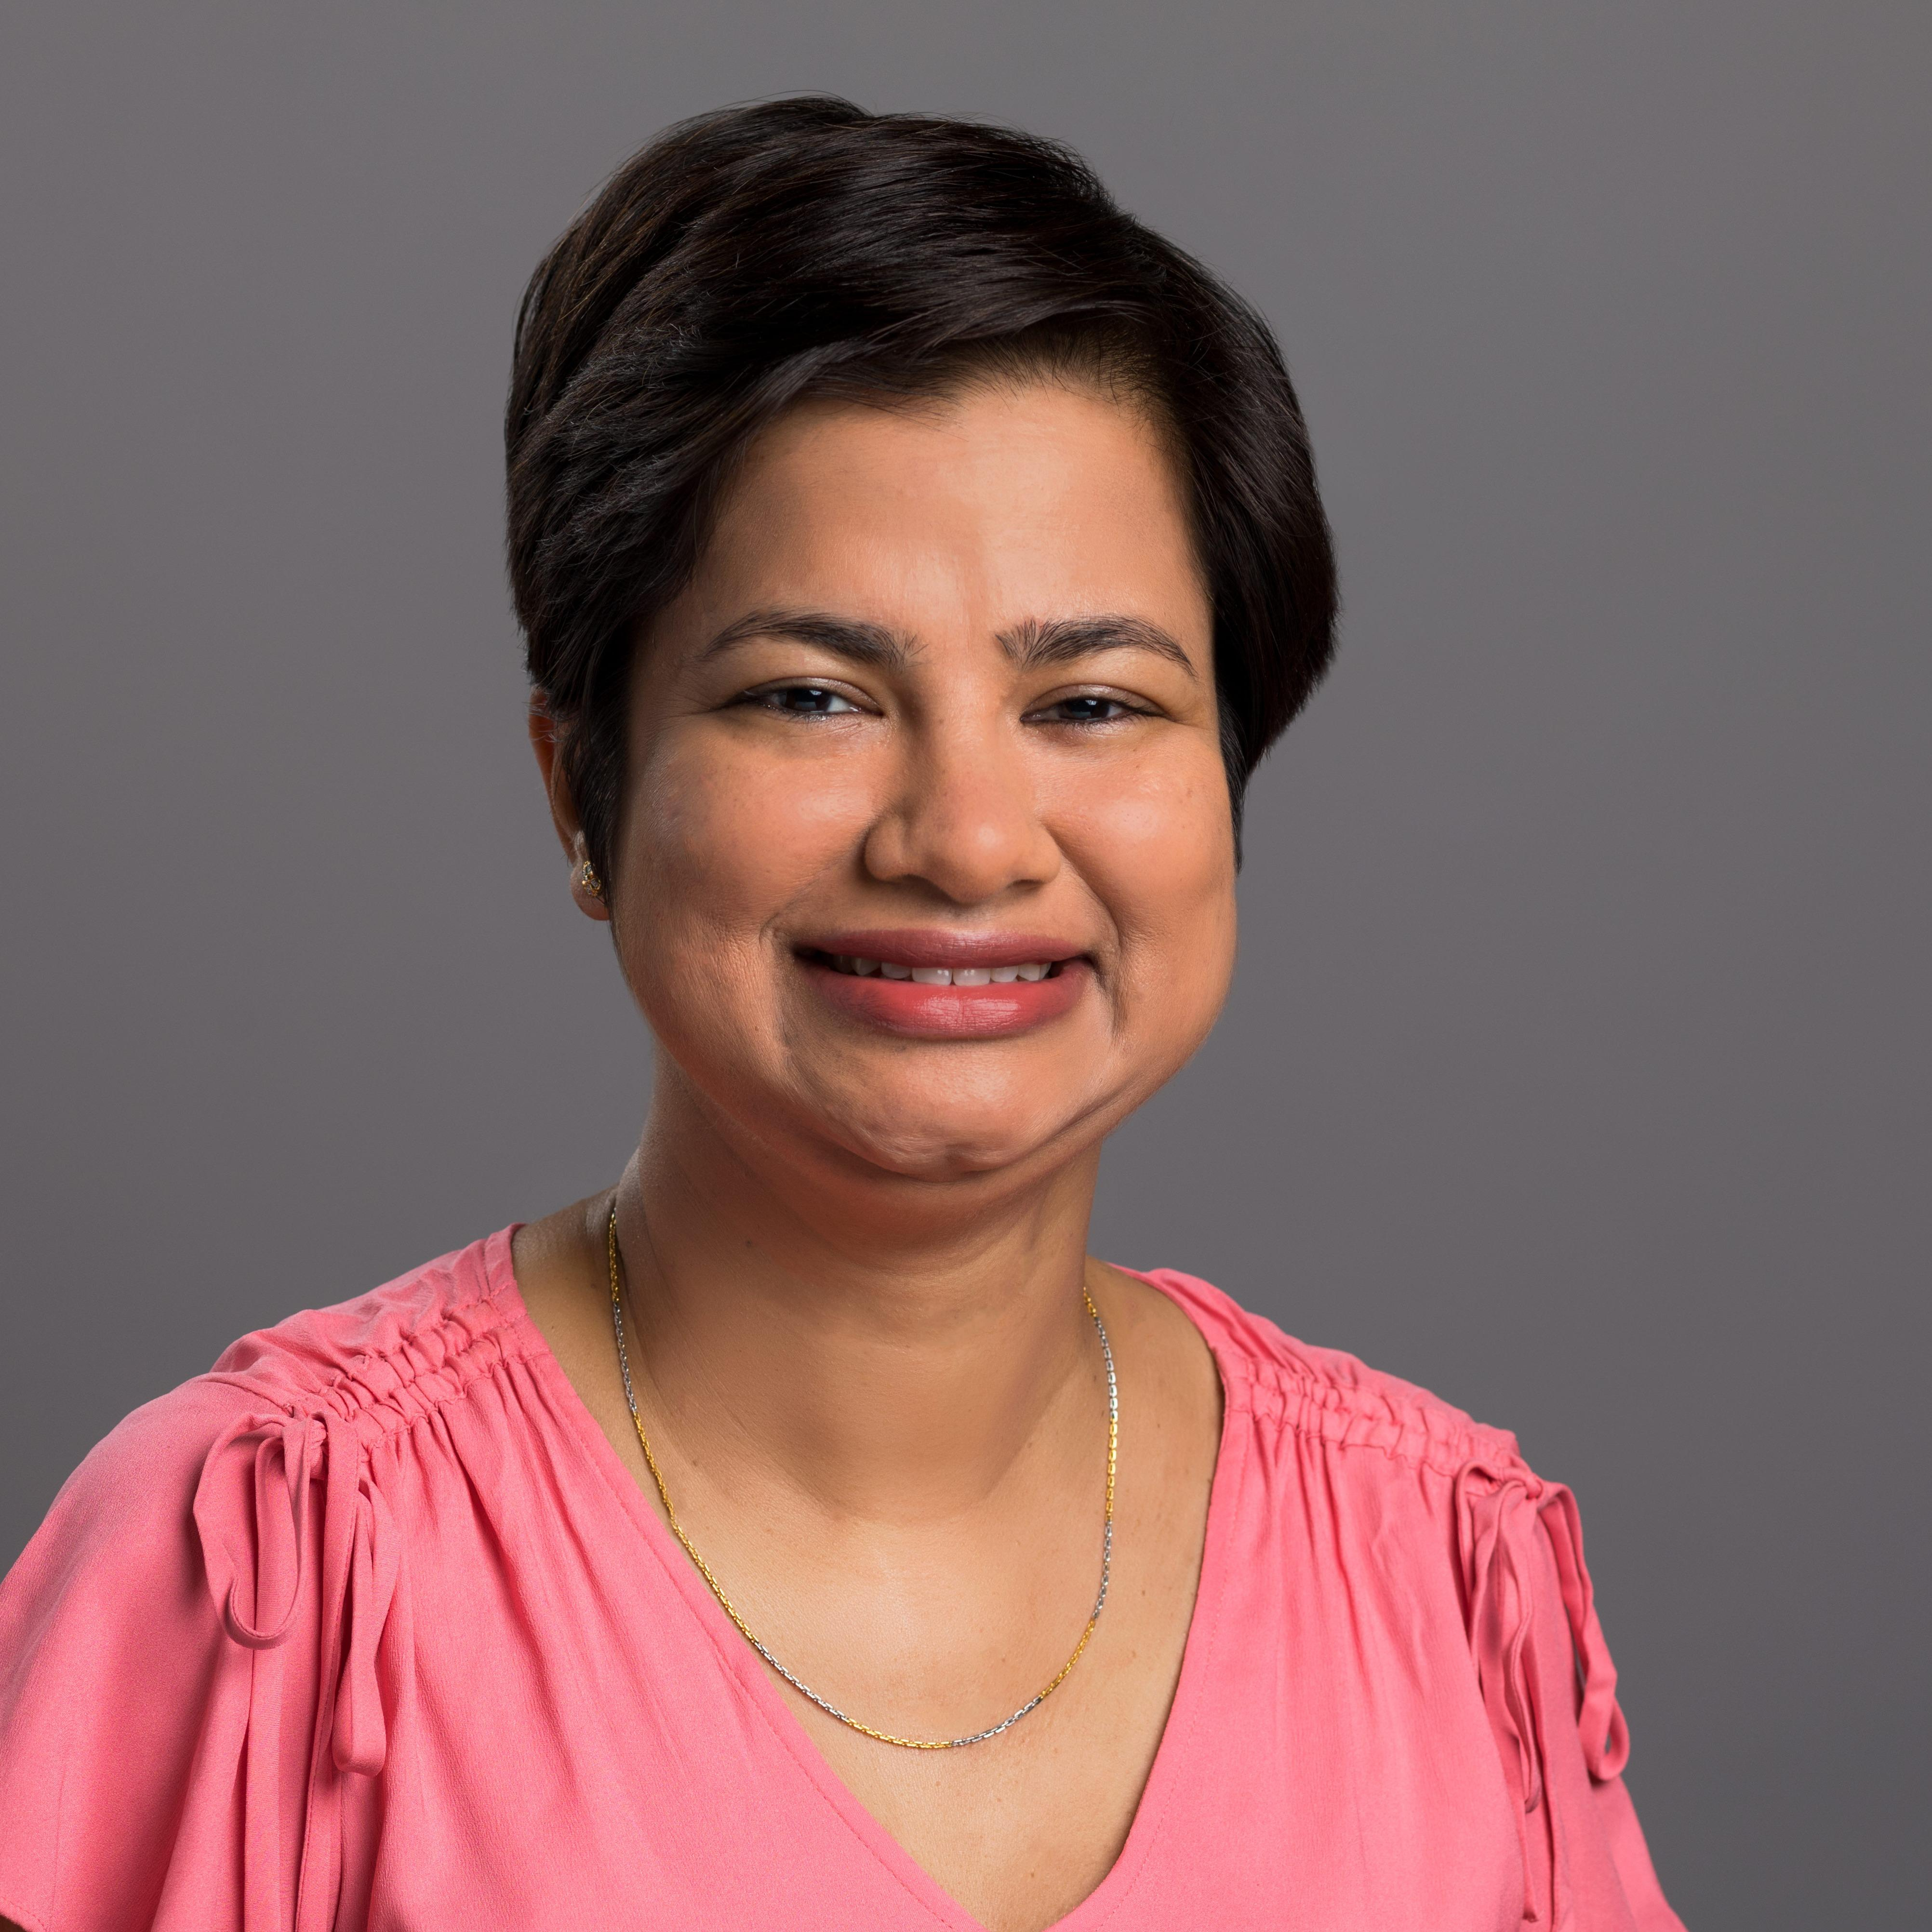 Headshot photo of Bushra Liaqat, DDS, MPH